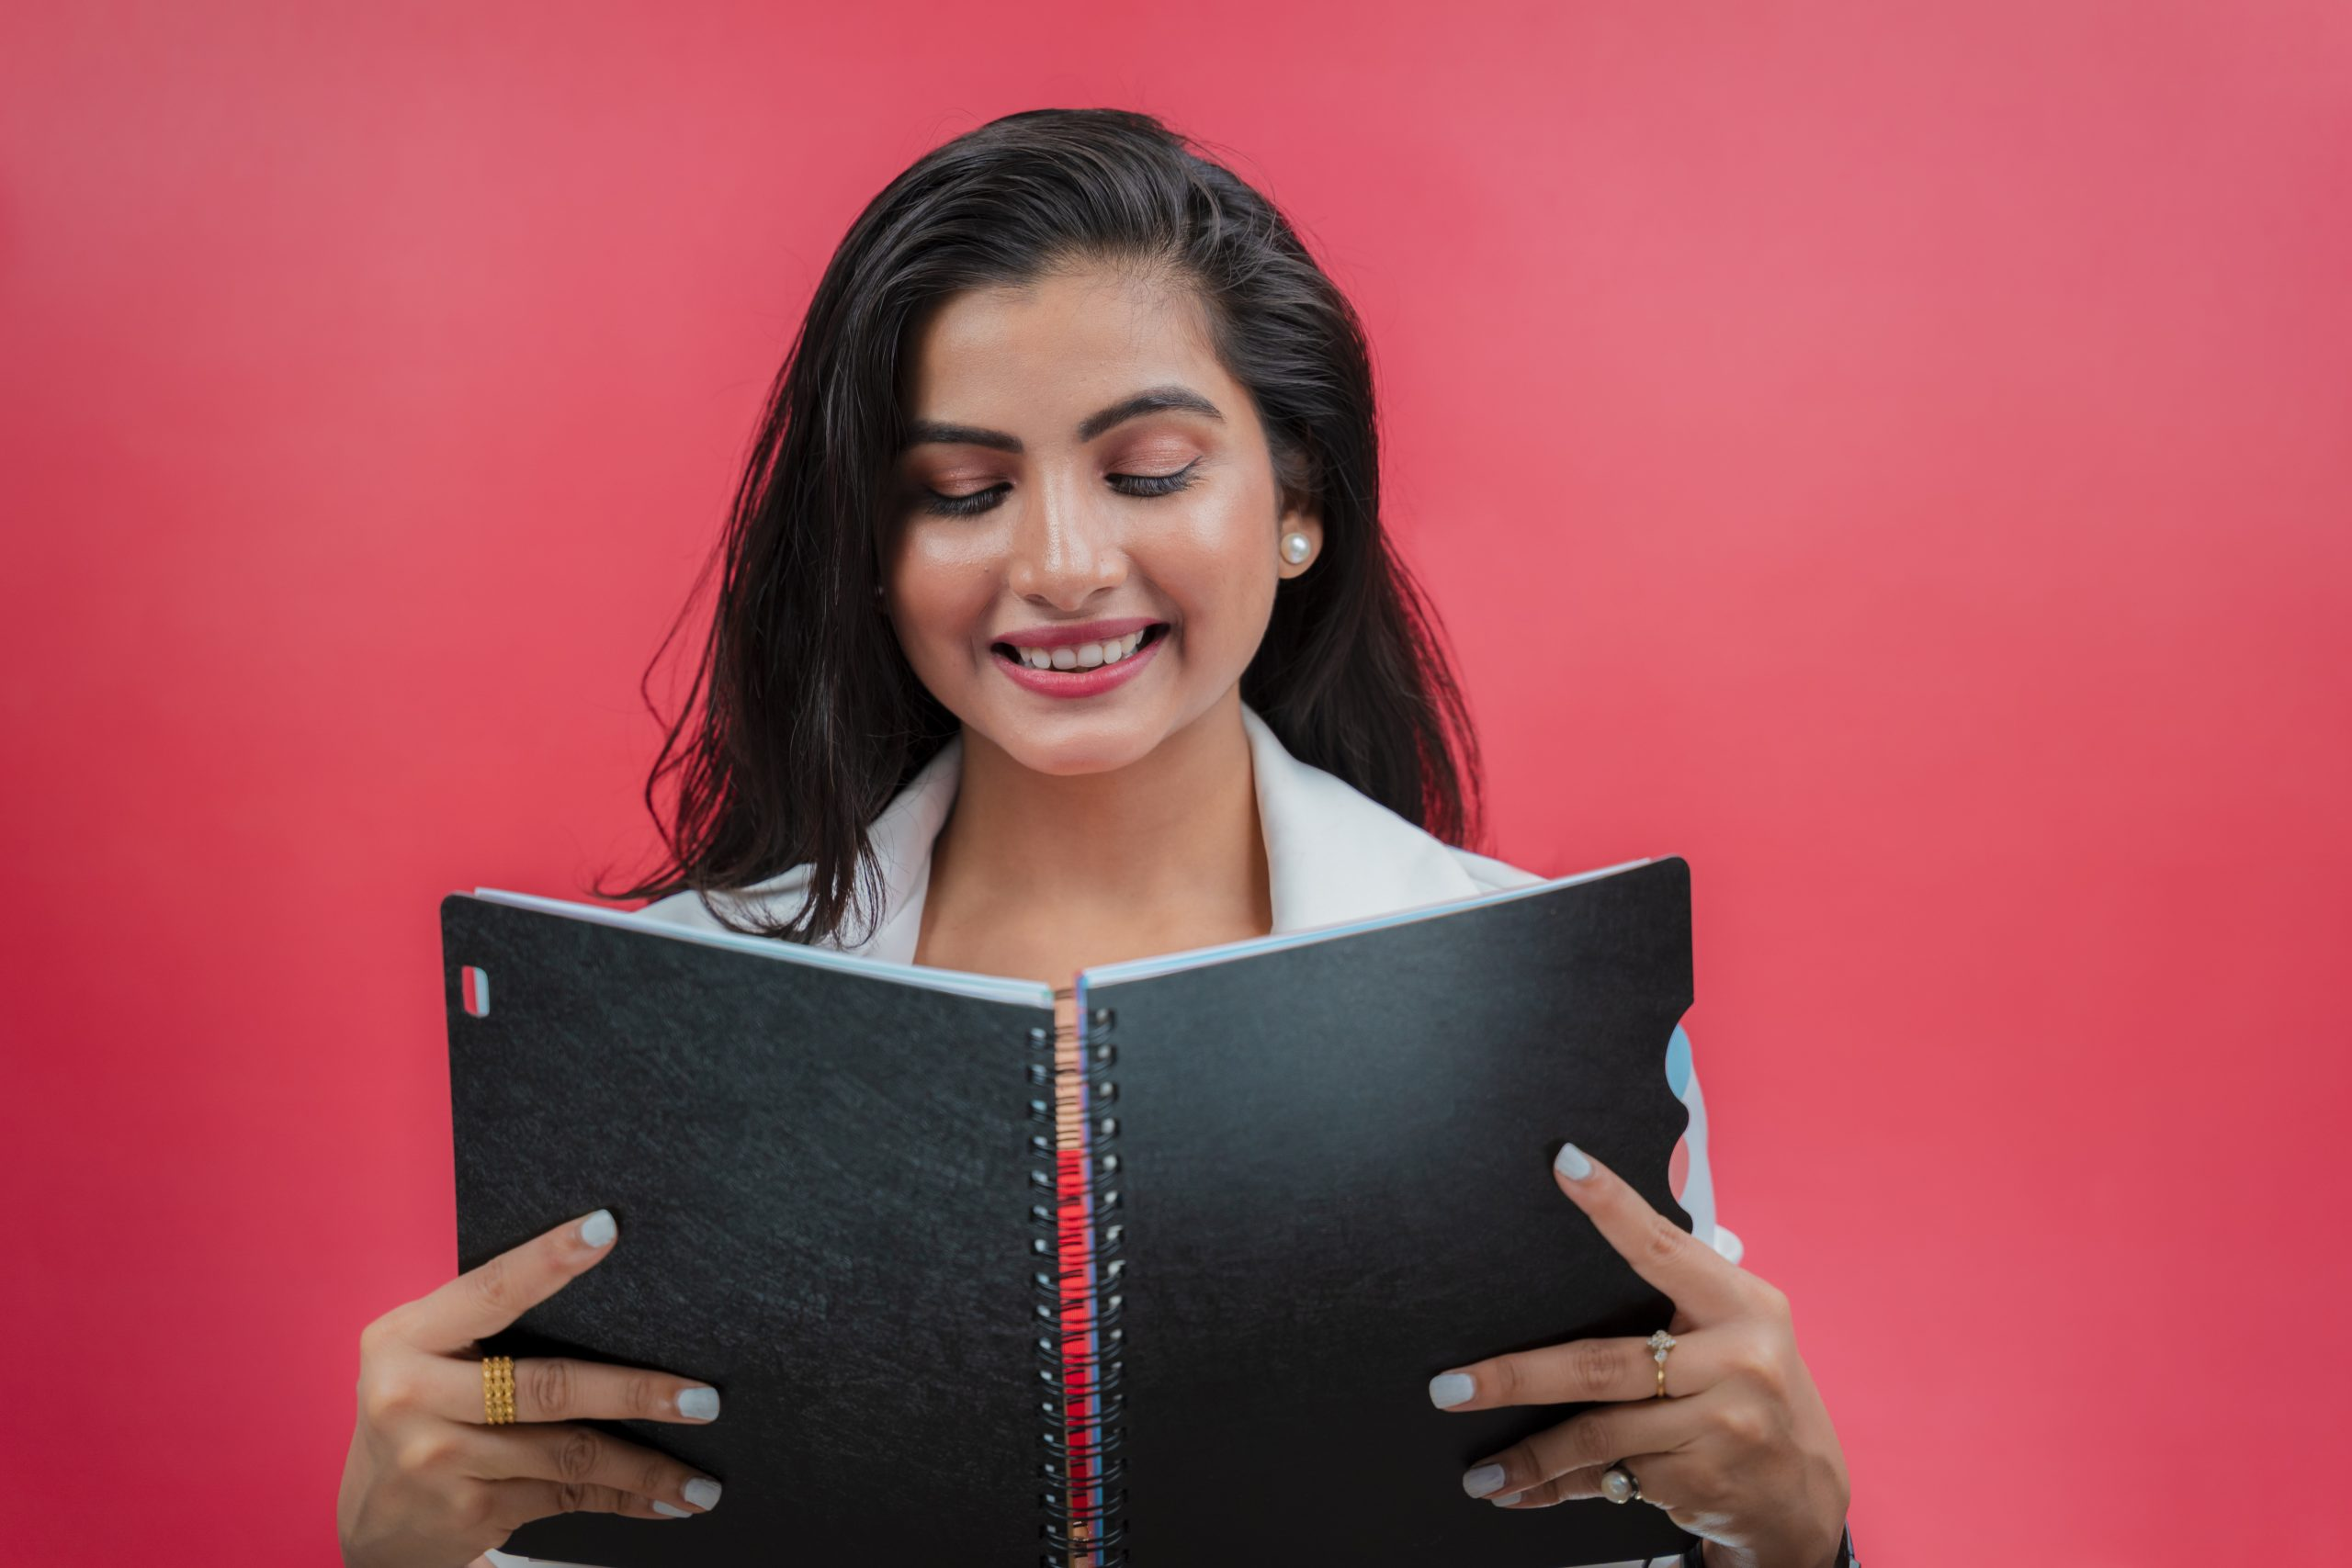 Smiling young woman reading book